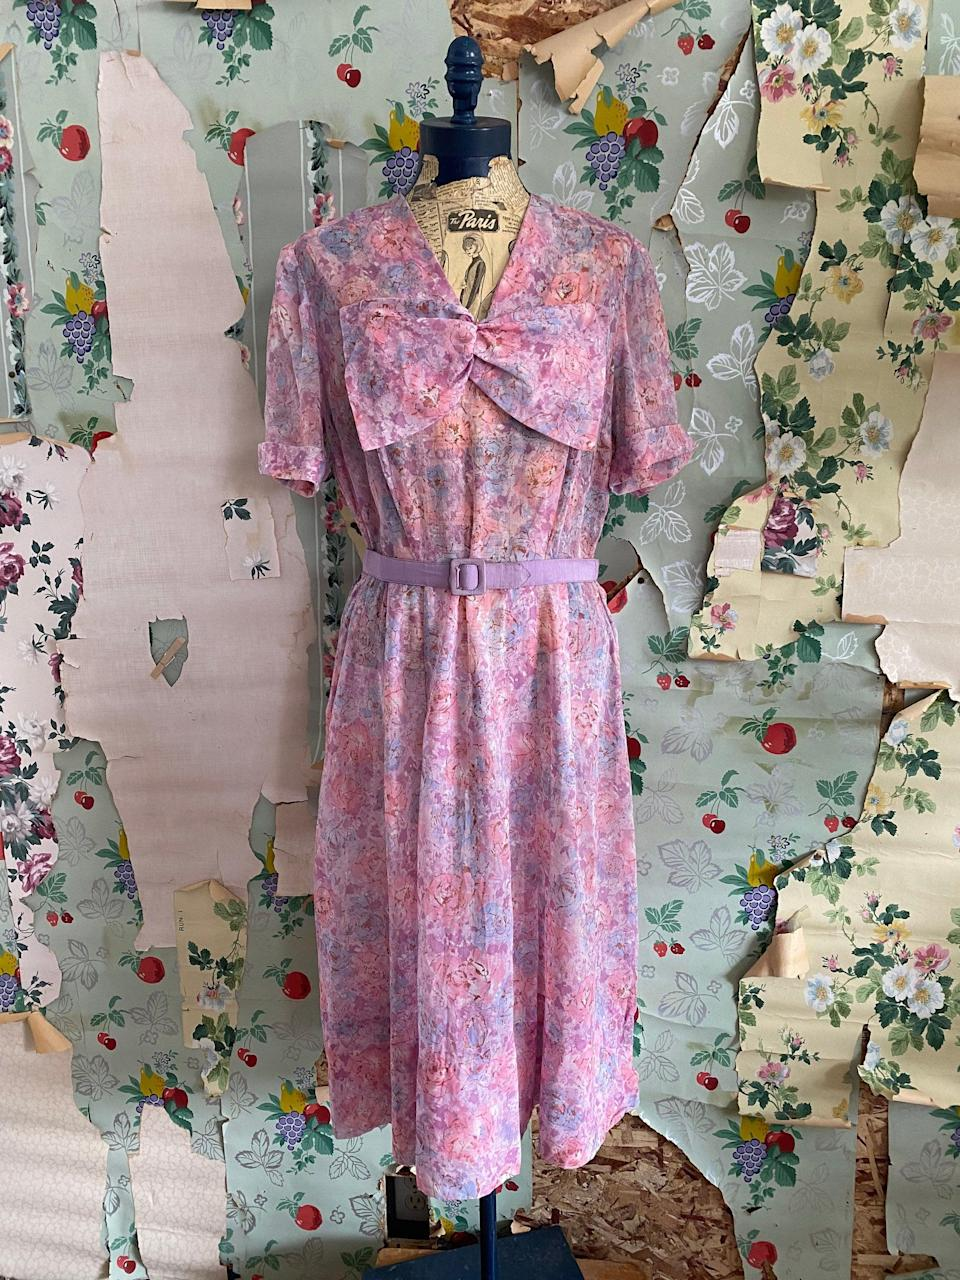 "<br><br><strong>Vintage</strong> Vintage 1940s Sheer Nelly Don Pastel, $, available at <a href=""https://go.skimresources.com/?id=30283X879131&url=https%3A%2F%2Fwww.copperhivevintage.com%2Flisting%2F772103248%2Fvintage-1940s-sheer-nelly-don-pastel"" rel=""nofollow noopener"" target=""_blank"" data-ylk=""slk:Copper Hive Vintage"" class=""link rapid-noclick-resp"">Copper Hive Vintage</a>"